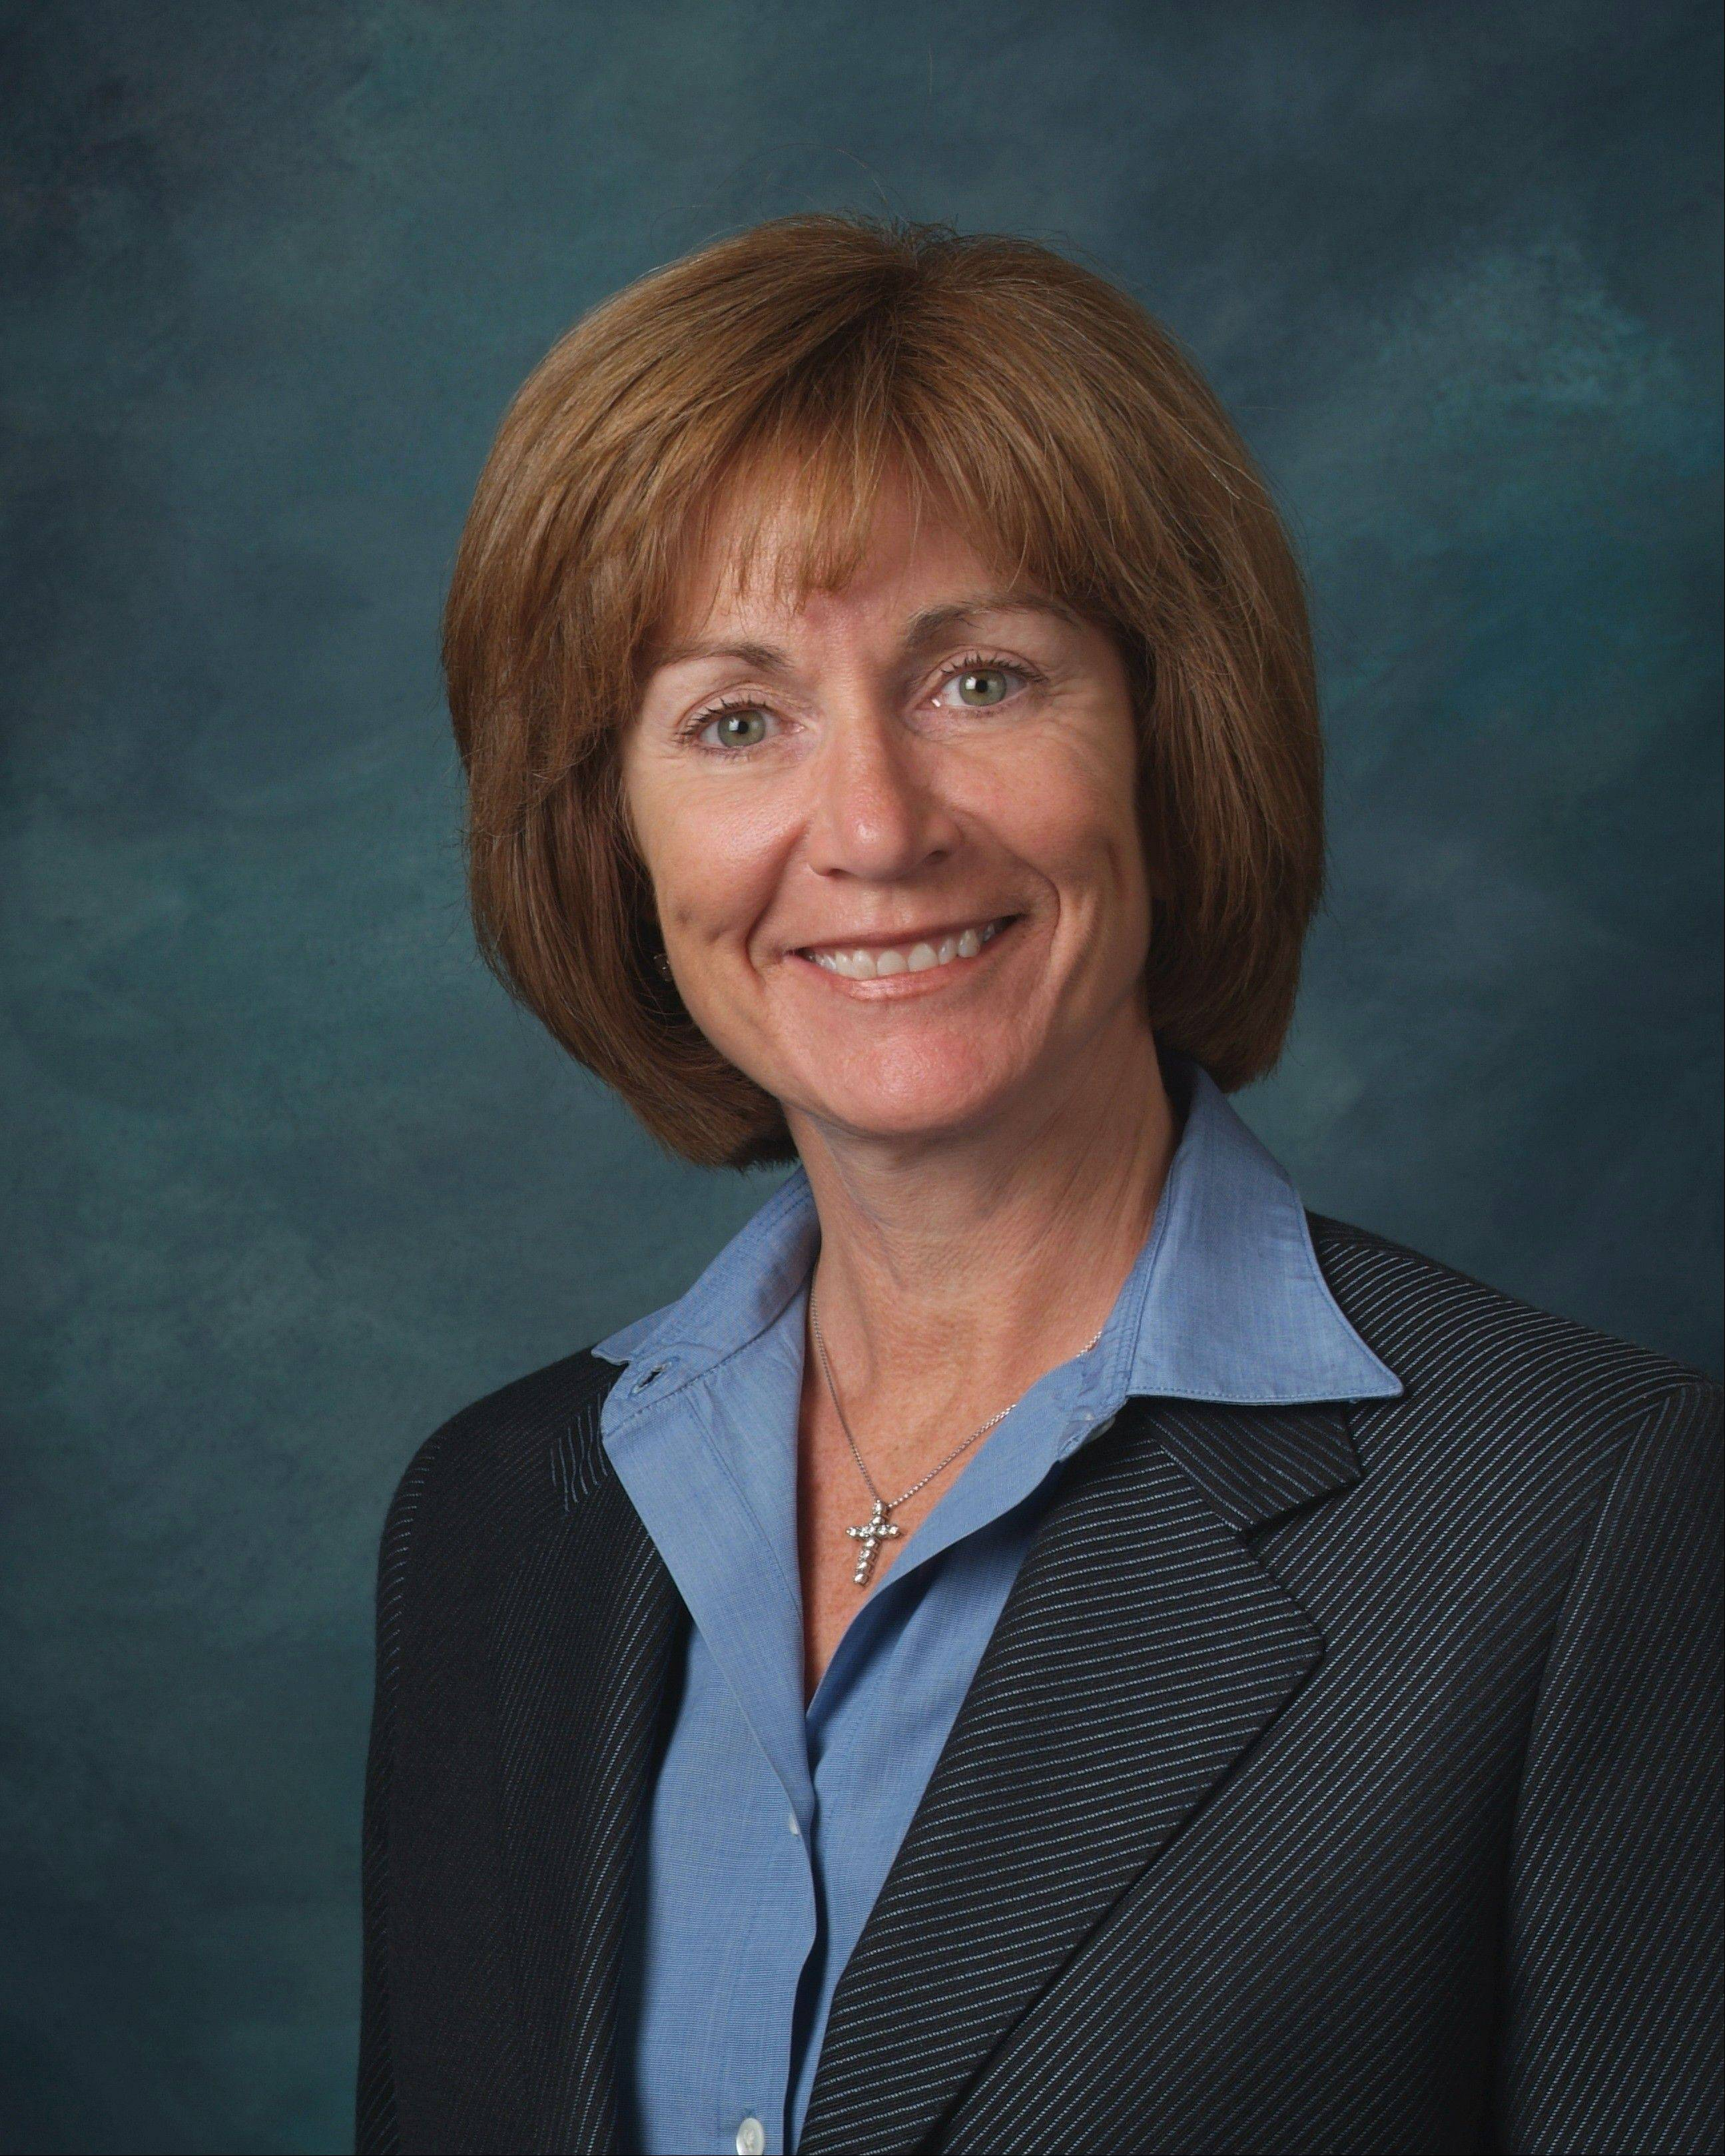 Mary Lou Mastro is president and CEO of Elmhurst Memorial Healthcare now that the organization has finalized its merger with Edward Hospital & Health Services. Mastro previously was president of Linden Oaks at Edward, a 108-bed behavioral health hospital.